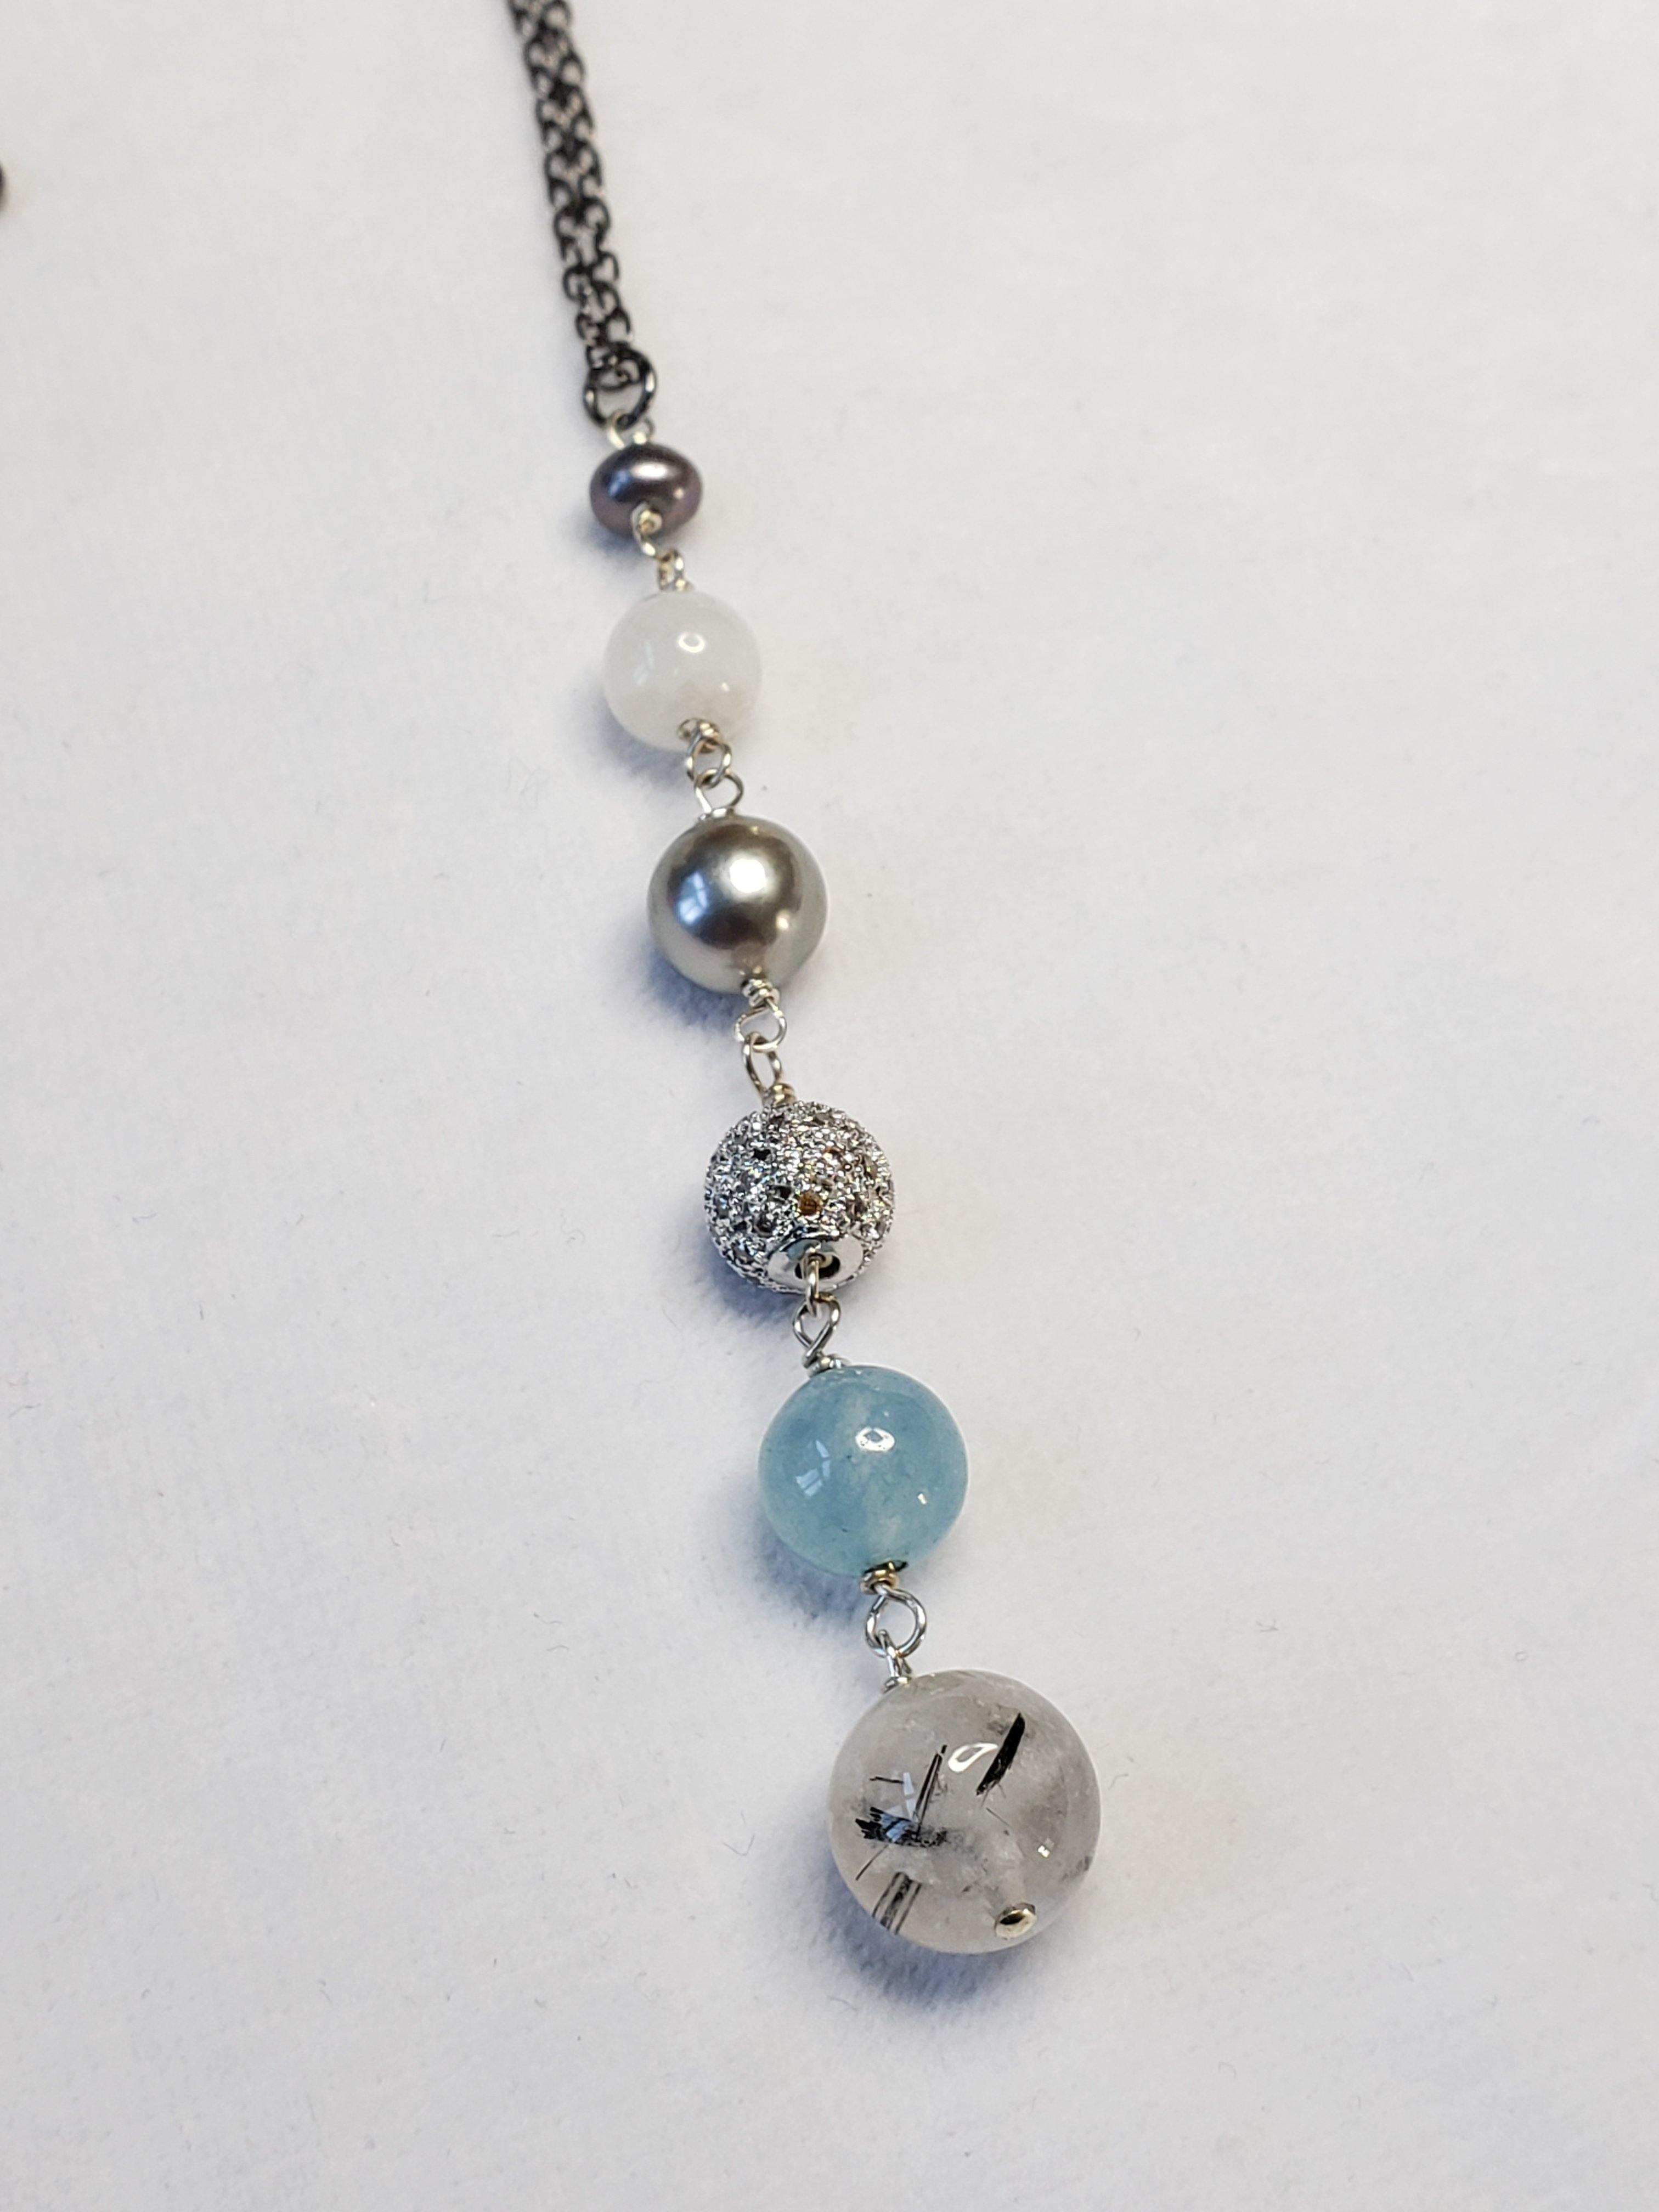 Long Drop Necklace; Rutilated Quartz, Pearl, Moonstone, and Aquamarine with a Pave Bead